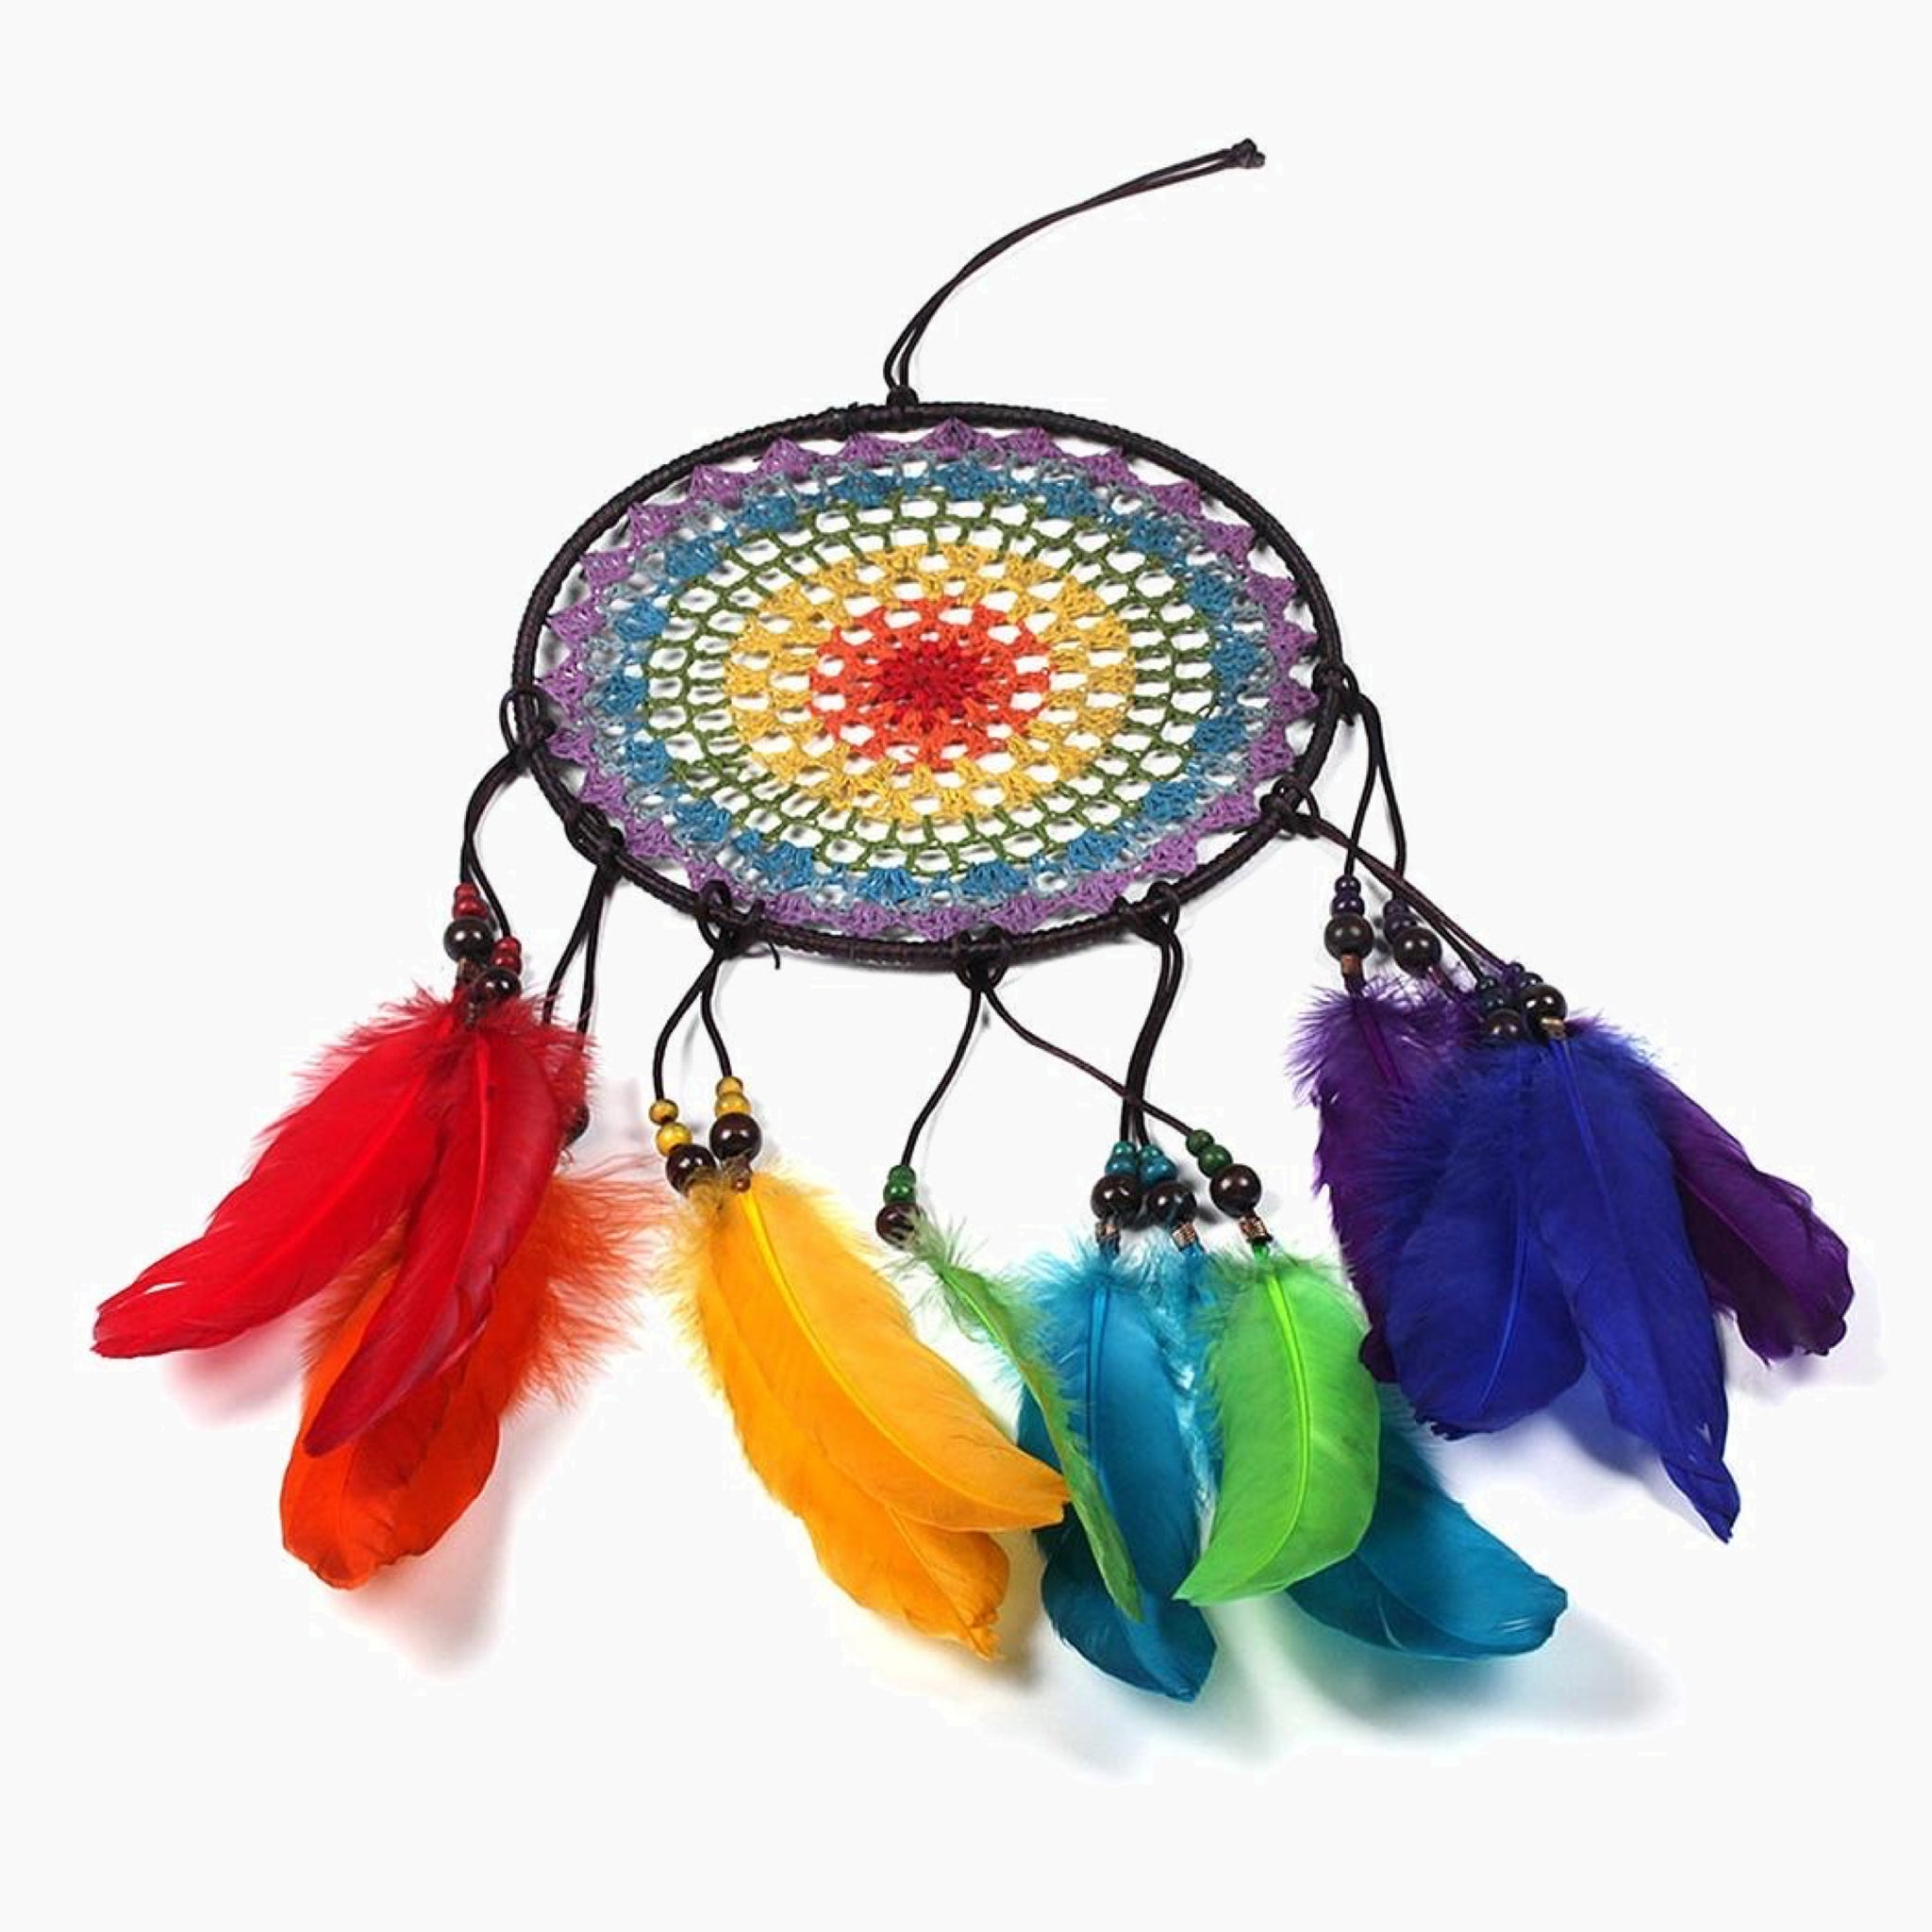 Handmade 7 Rainbow Color Feather Dreamcatcher Wind Chimes Owl Dream Catchers For Gifts DIY Wedding Home Decor Ornaments Trend